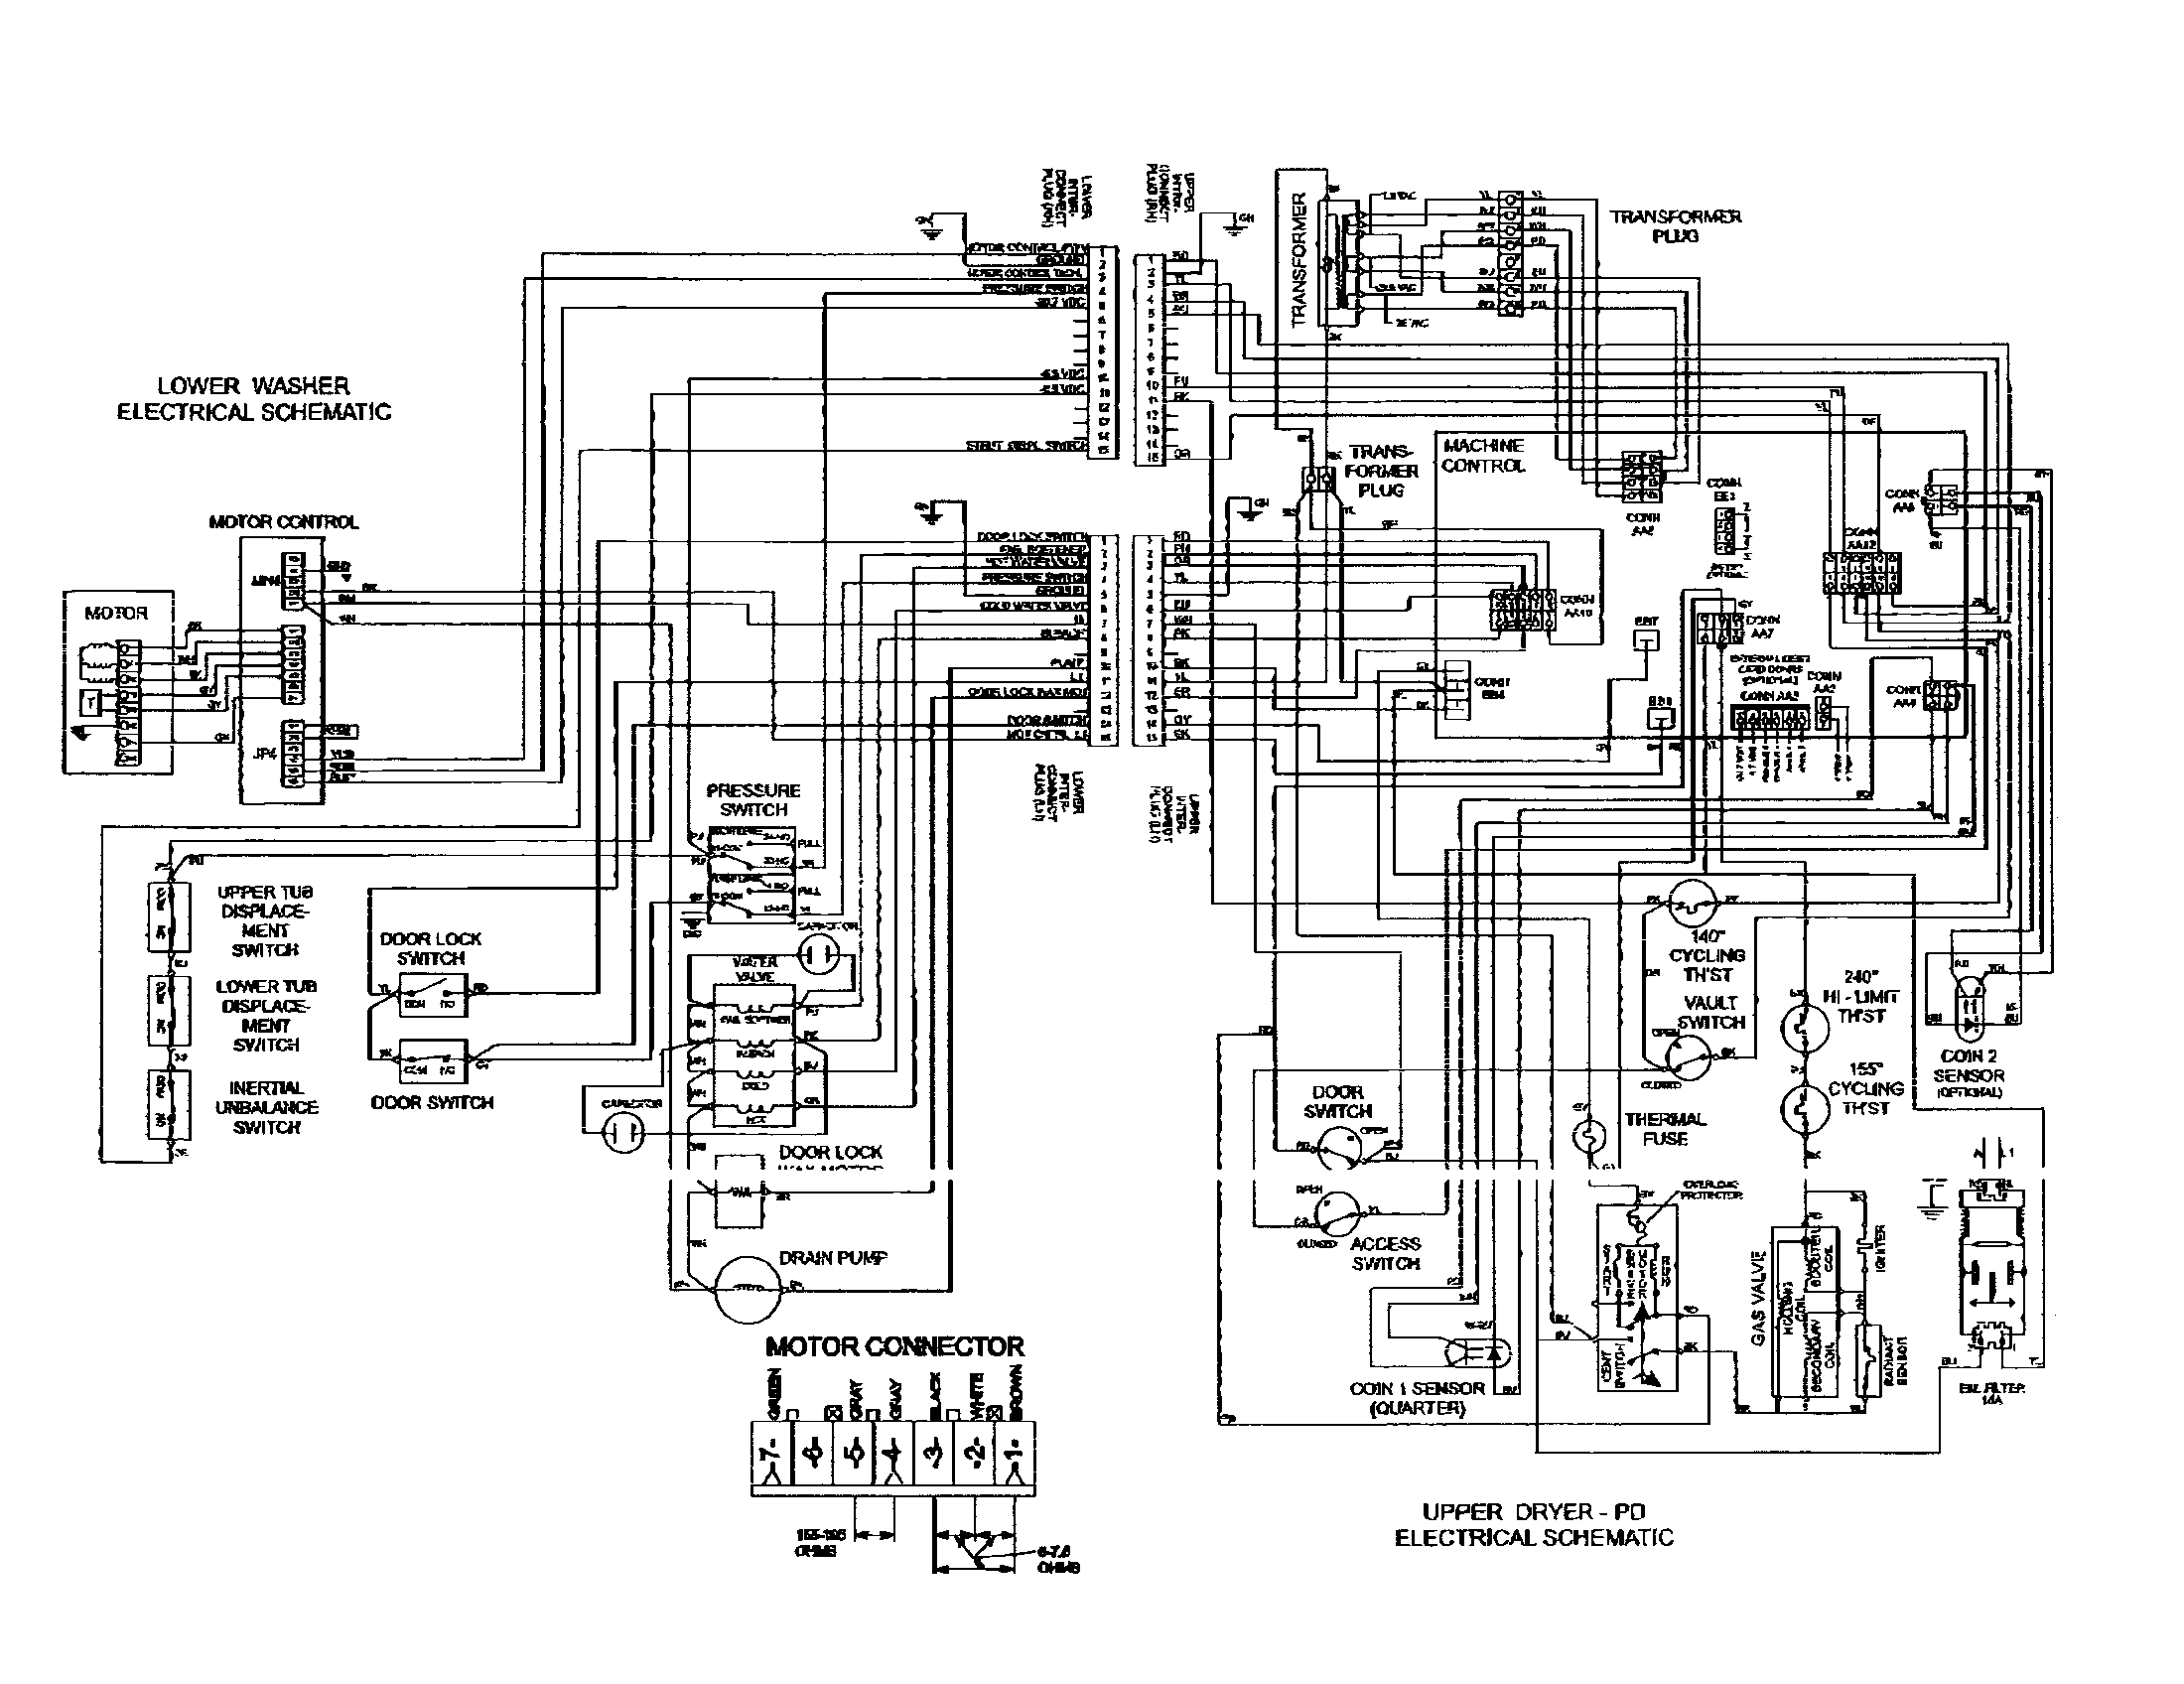 maytag washer wiring diagram Collection-P 7-j